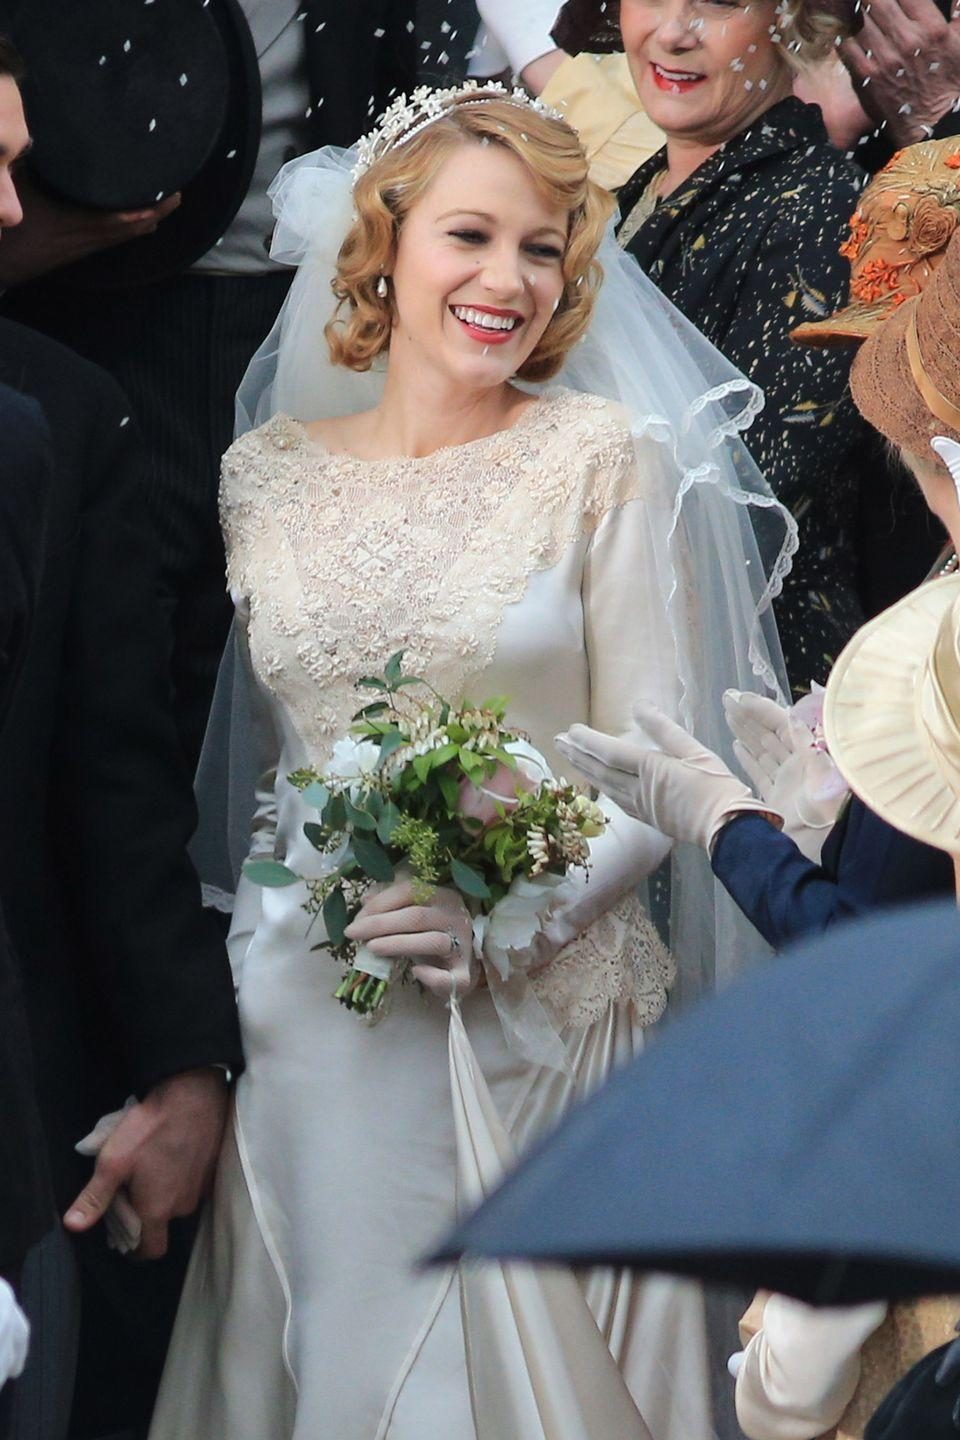 <p>Adaline Bowman (Blake Lively) may be ageless, but before her accident, she got married in this period-style wedding dress. Between the lace on the front and the satin sleeves and skirt, we feel confident that this gown would work in any time period.<br></p>